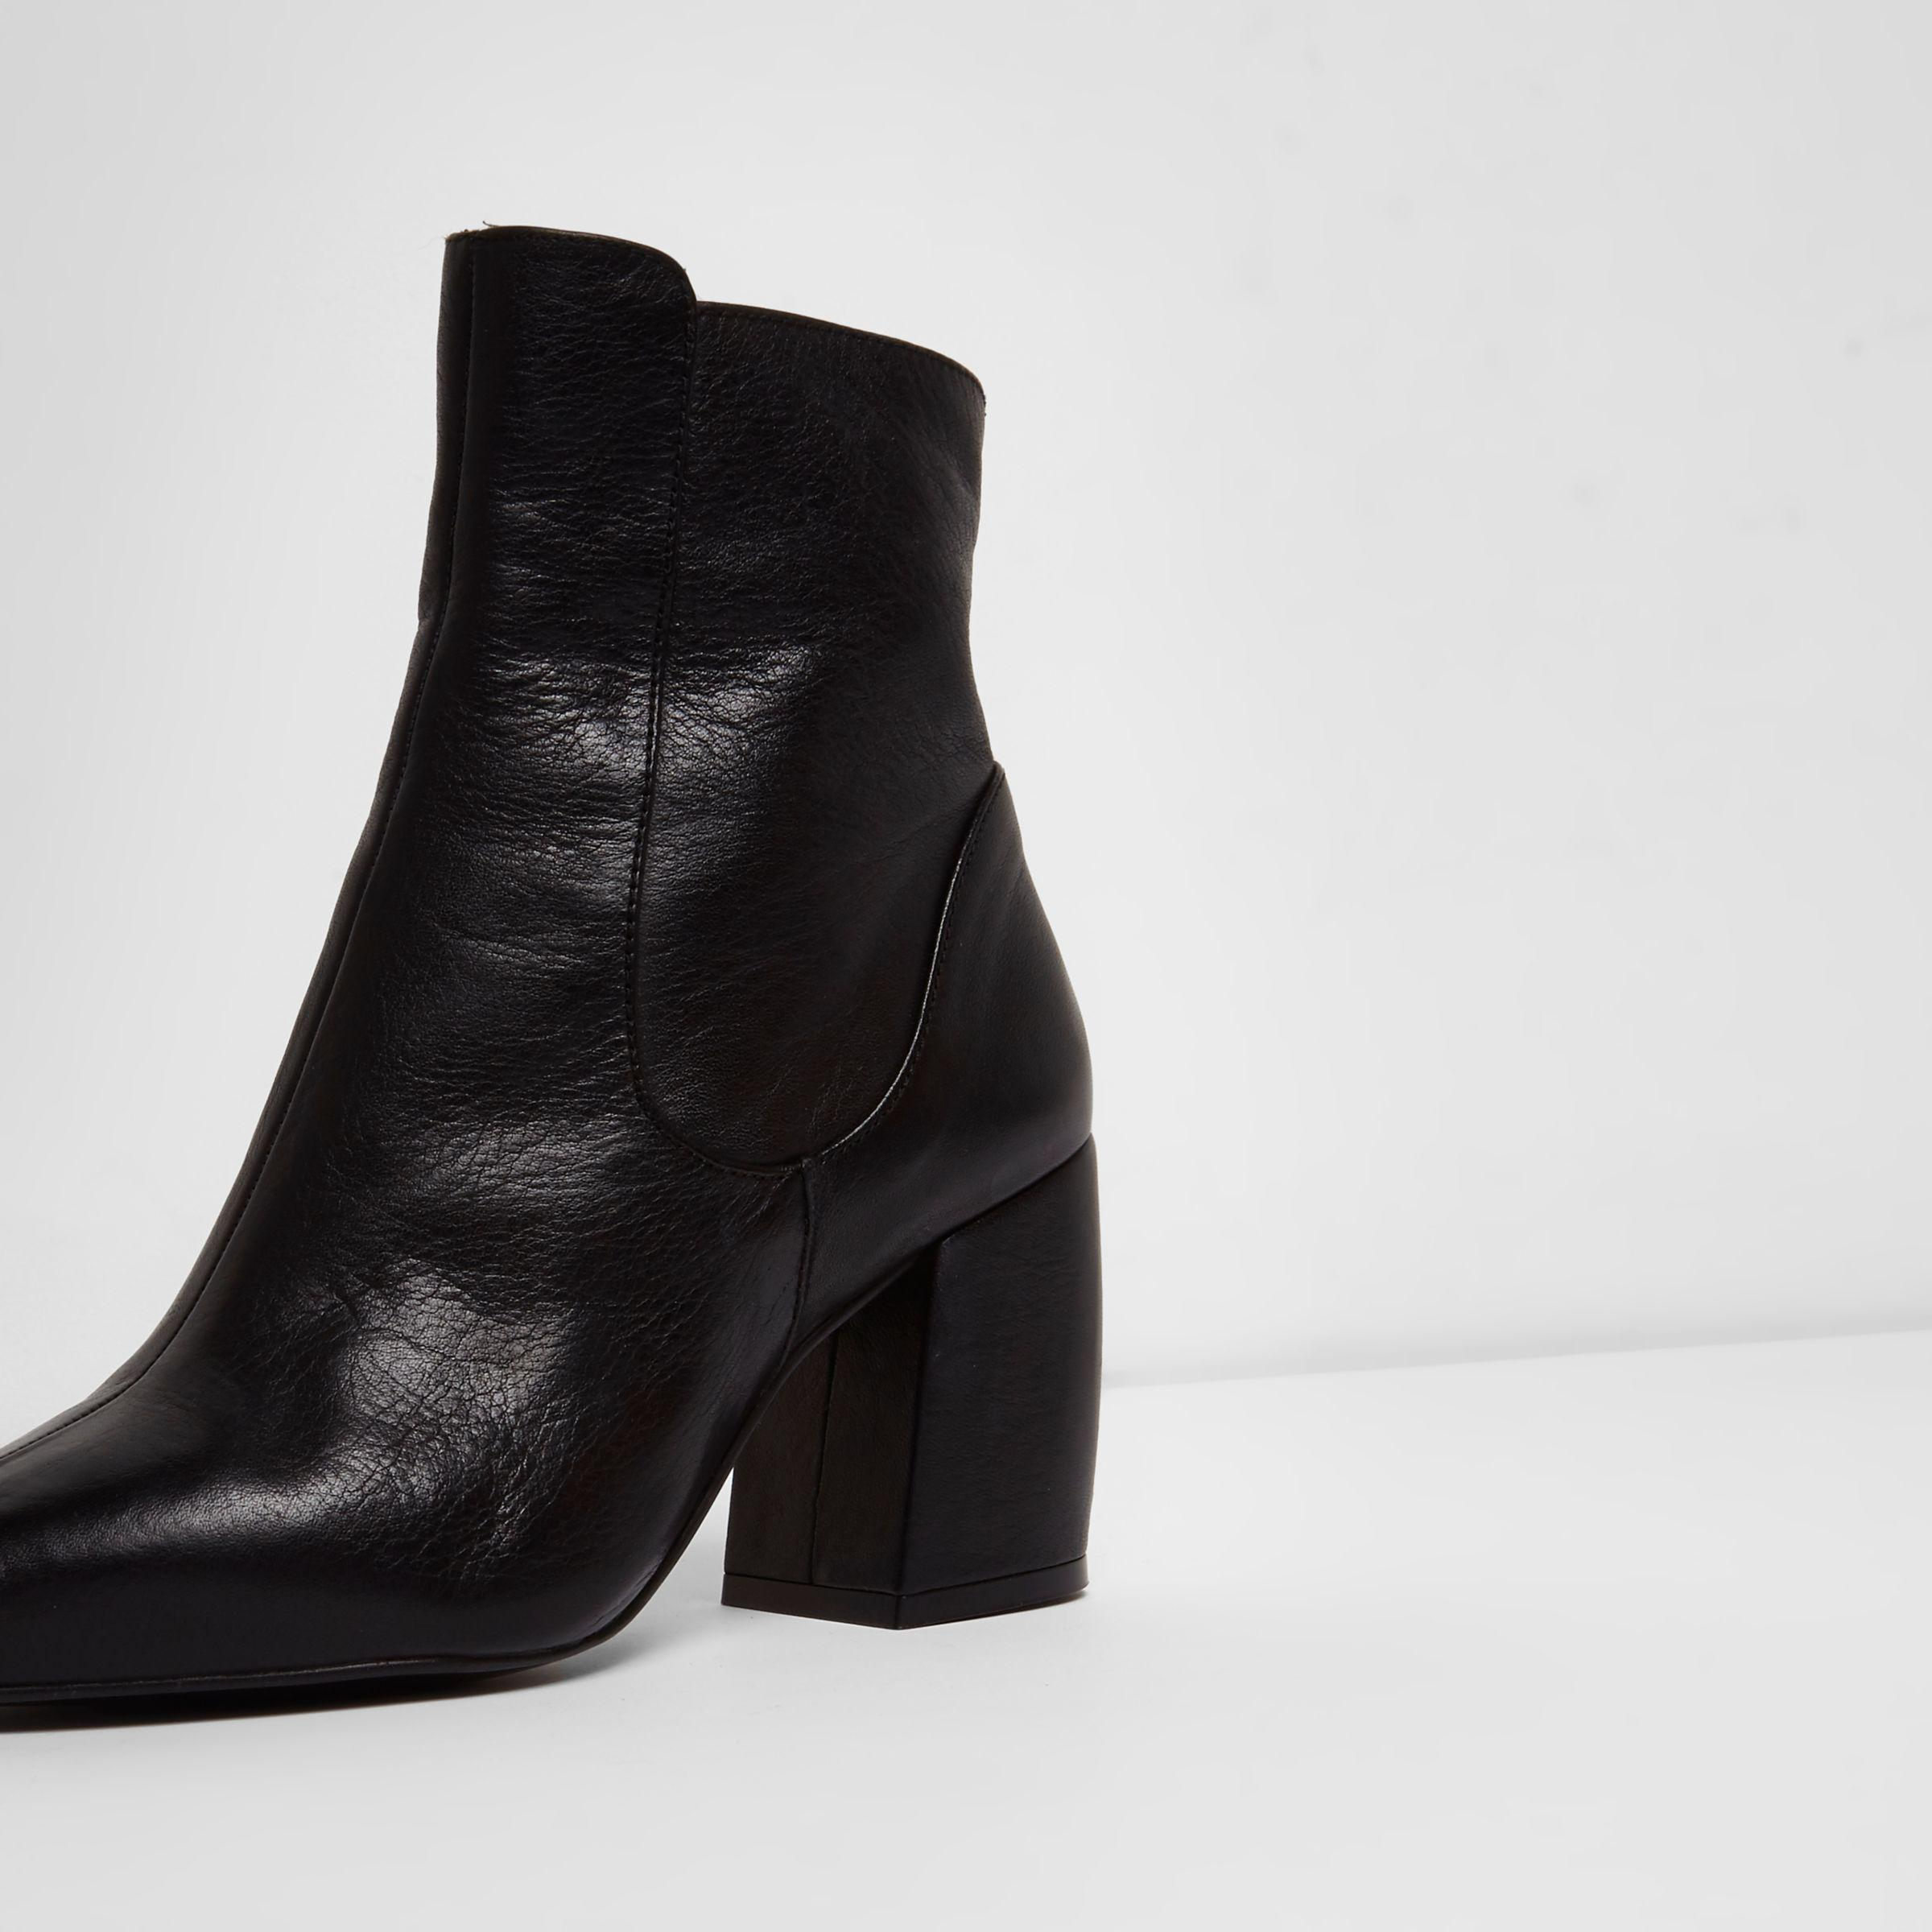 605f865383d3 River Island Black Leather Curved Heel Pointed Ankle Boots in Black ...